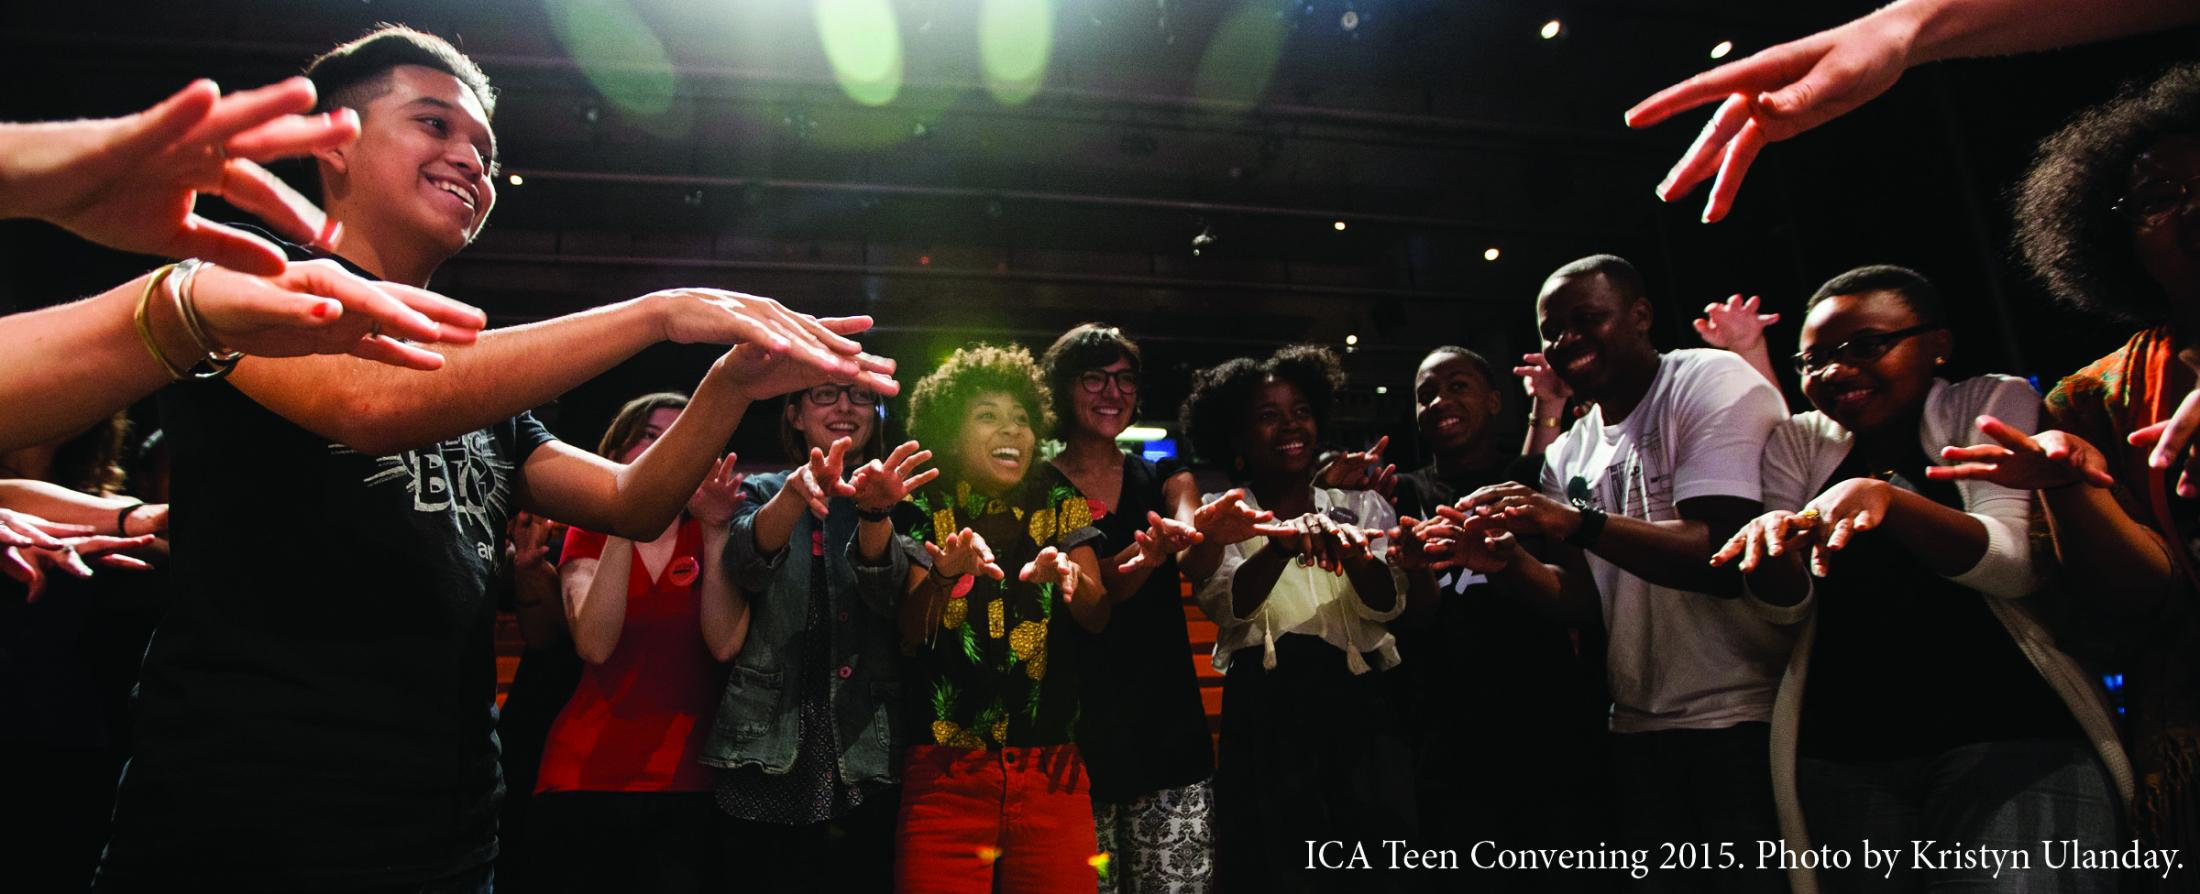 Art and Documentary Photography - Loading ICA_Teen_Convening_Madmimi.jpg